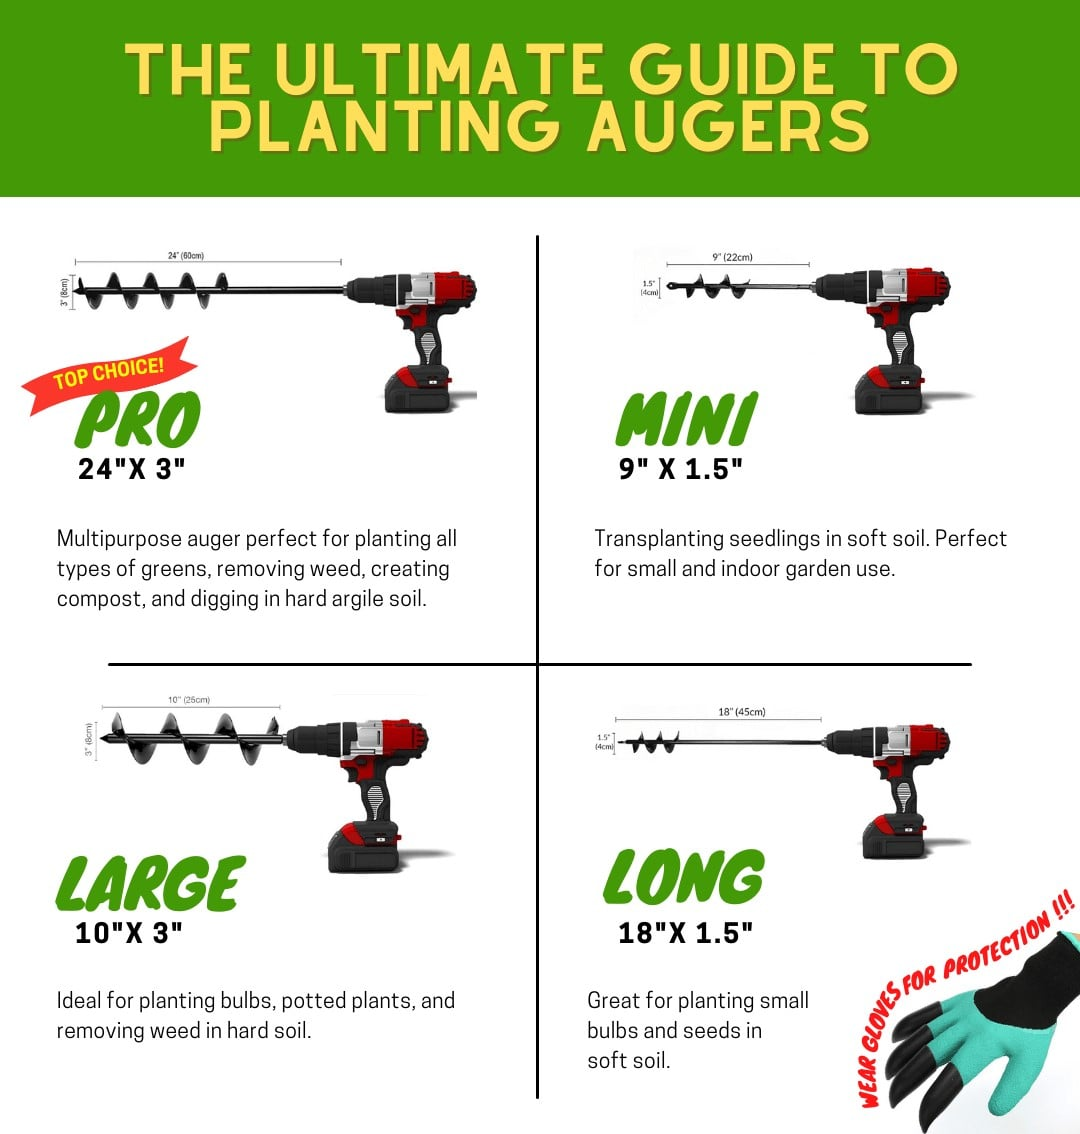 guide to planting auger kinds guide to planting auger sizes